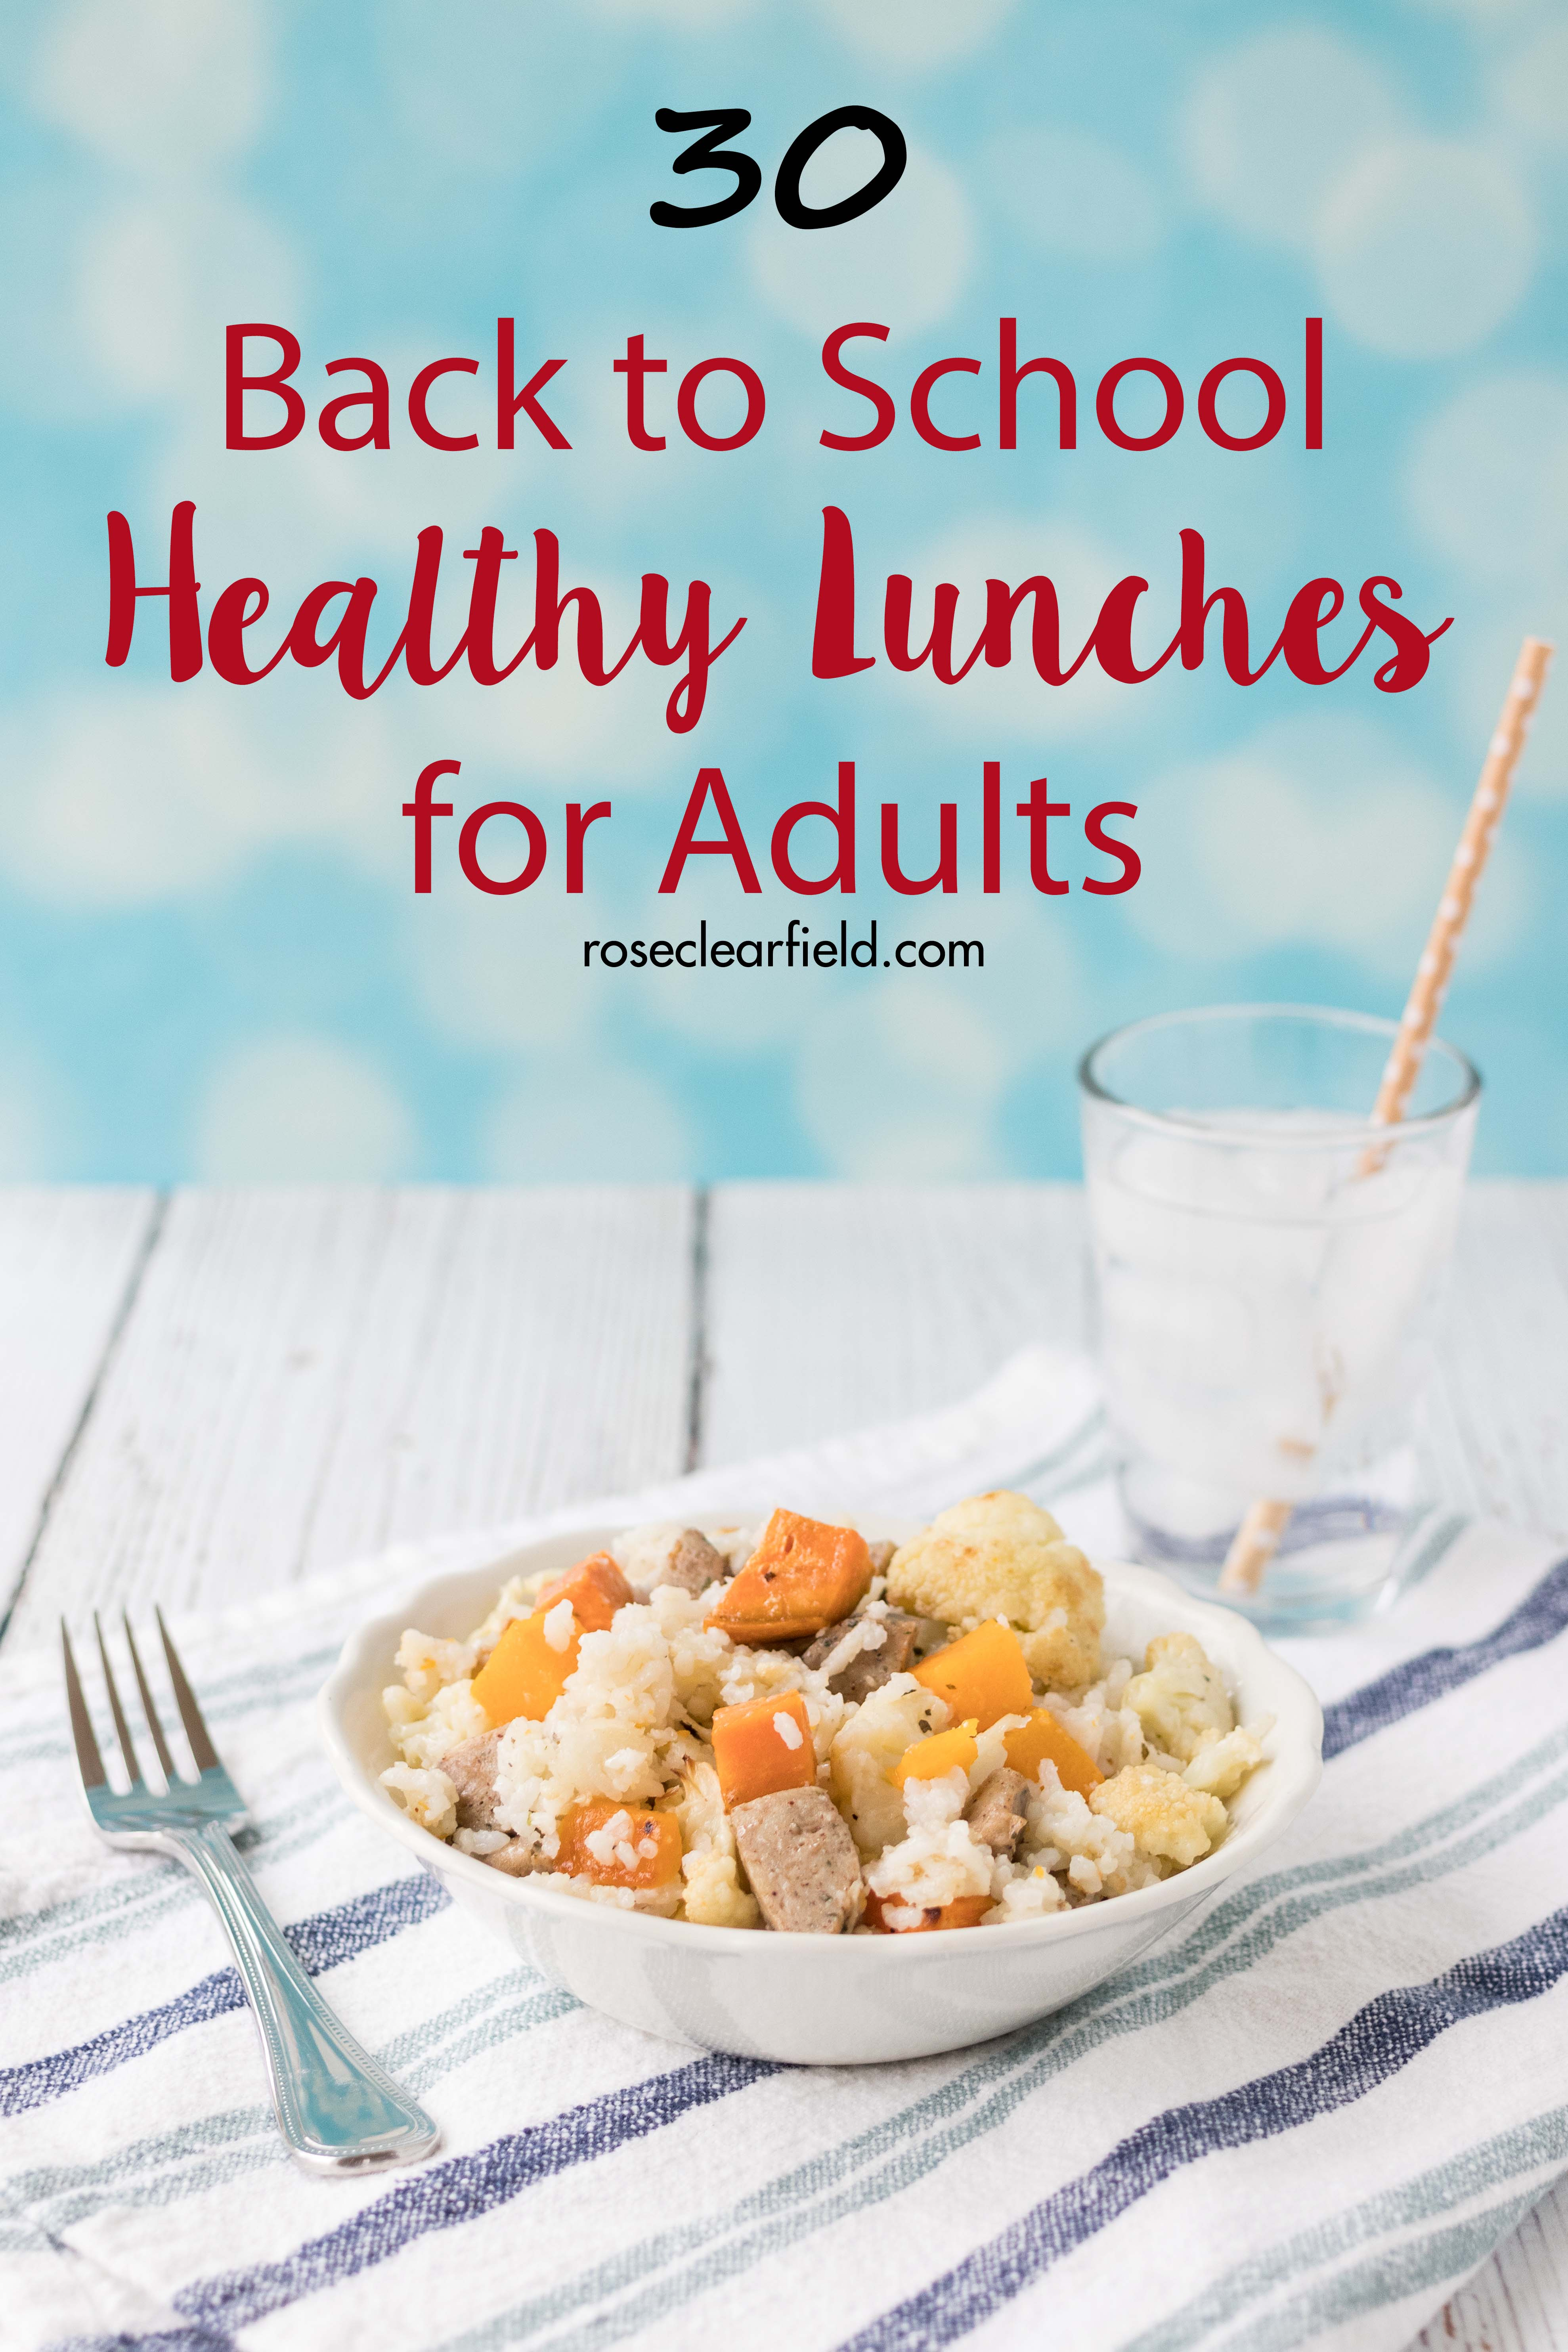 Back to School Healthy Lunches for Adults | http://www.roseclearfield.com